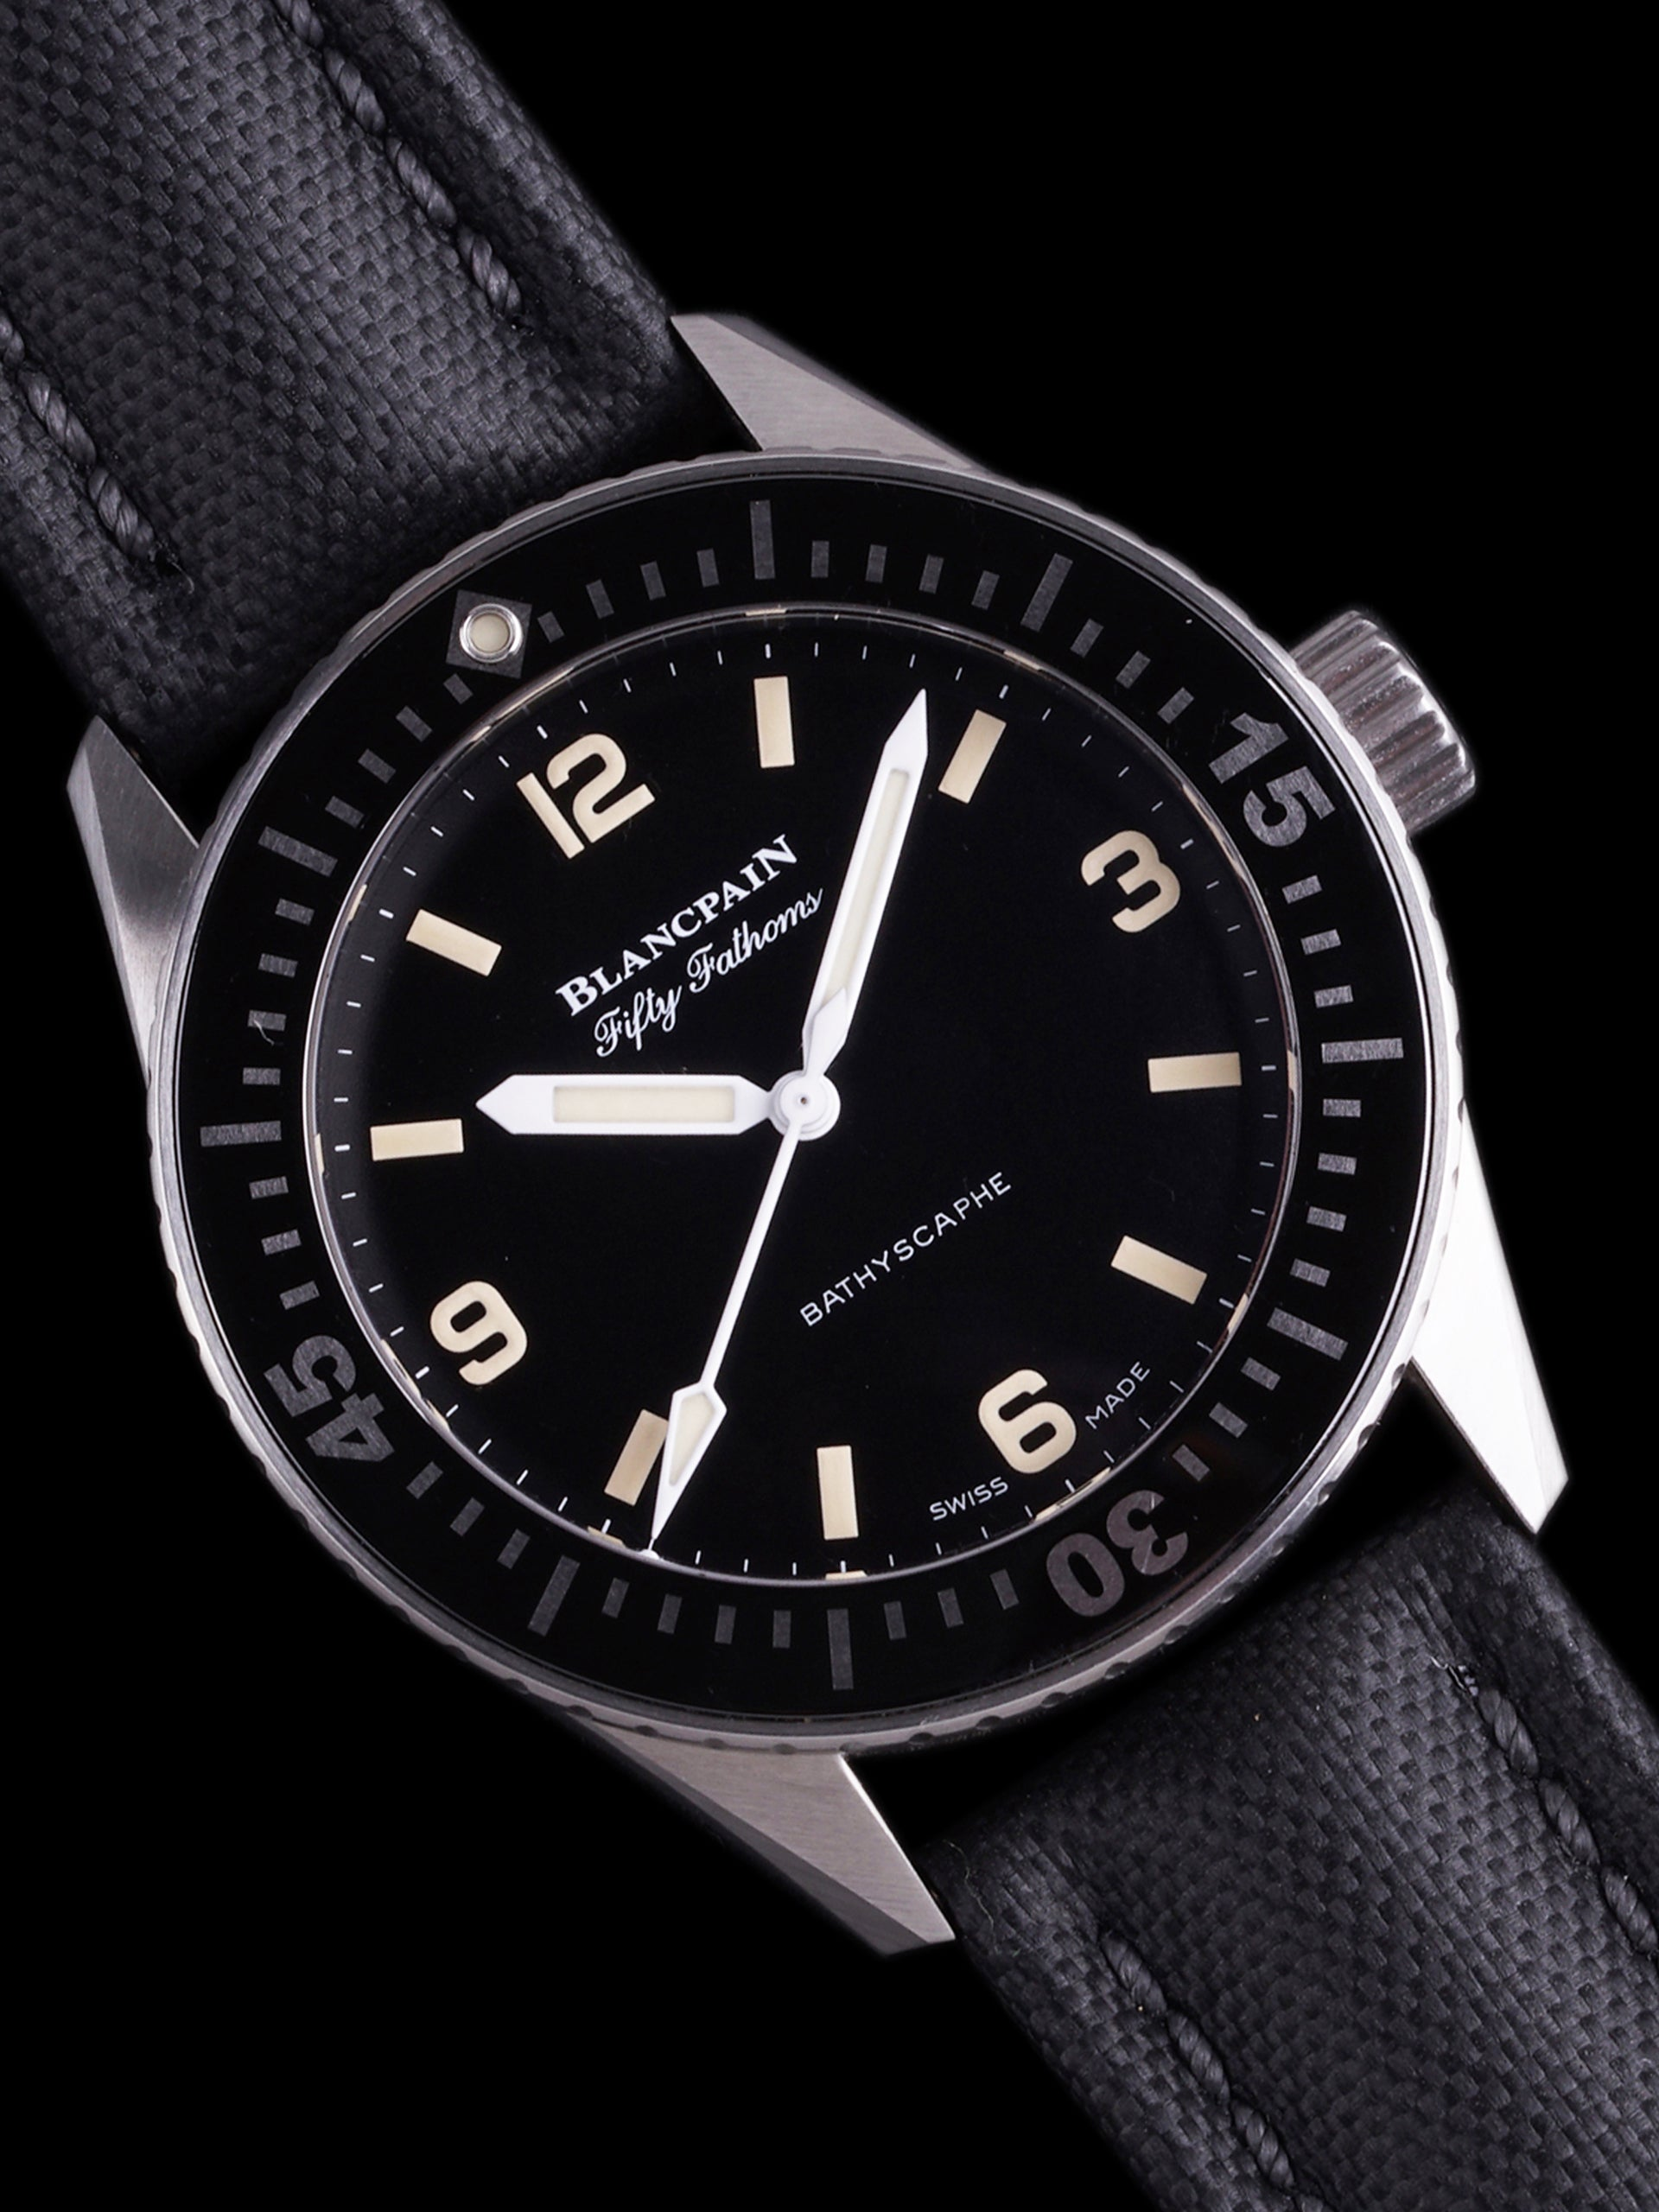 2019 Blancpain Fifty-Fathoms Bathyscaphe Hodinkee Limited Edition